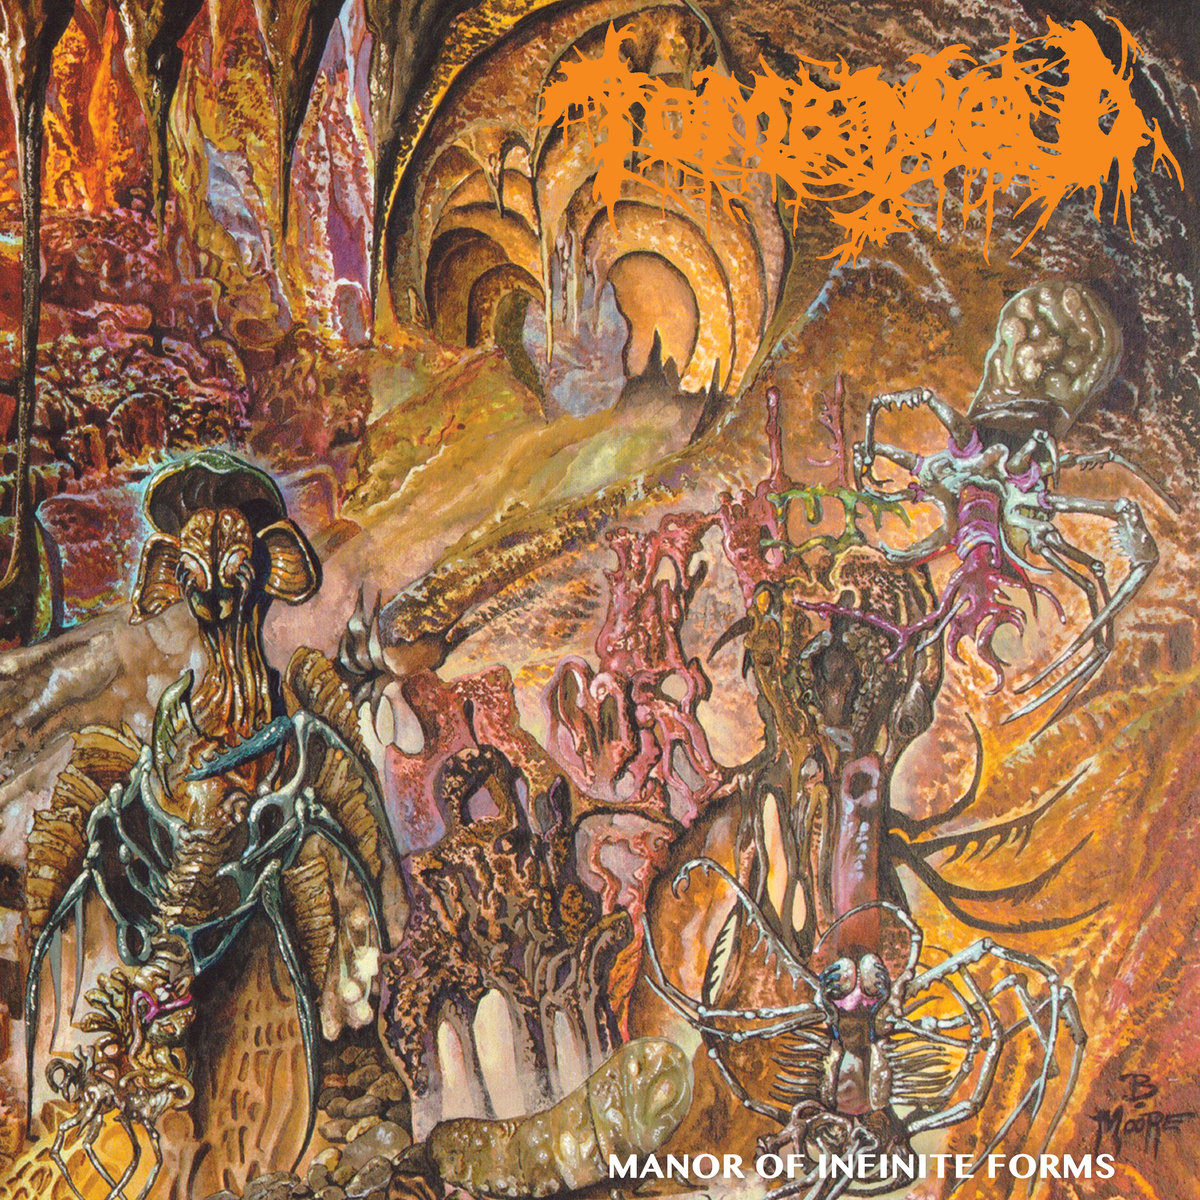 6. Manor Of Infinite Forms by Tomb Mold - At this point, I believe it is no secret that I have a huge place in my heart for gross, loud, vile, and brutal death metal. Especially the old school death metal as those were the first kinds of metal records I ever really gravitated towards, therefore I may be just a little biased here. BUT, among the plethora of incredible death metal releases this year, this Tomb Mold record, Manor Of Infinite Forms, is easily my favorite. Released on 20 Buck Spin, a fantastic label operating here in our hometown of Pittsburgh (represent), this record explores every grim and disgusting area of death metal you can imagine; and sound like complete masters of their craft doing it.